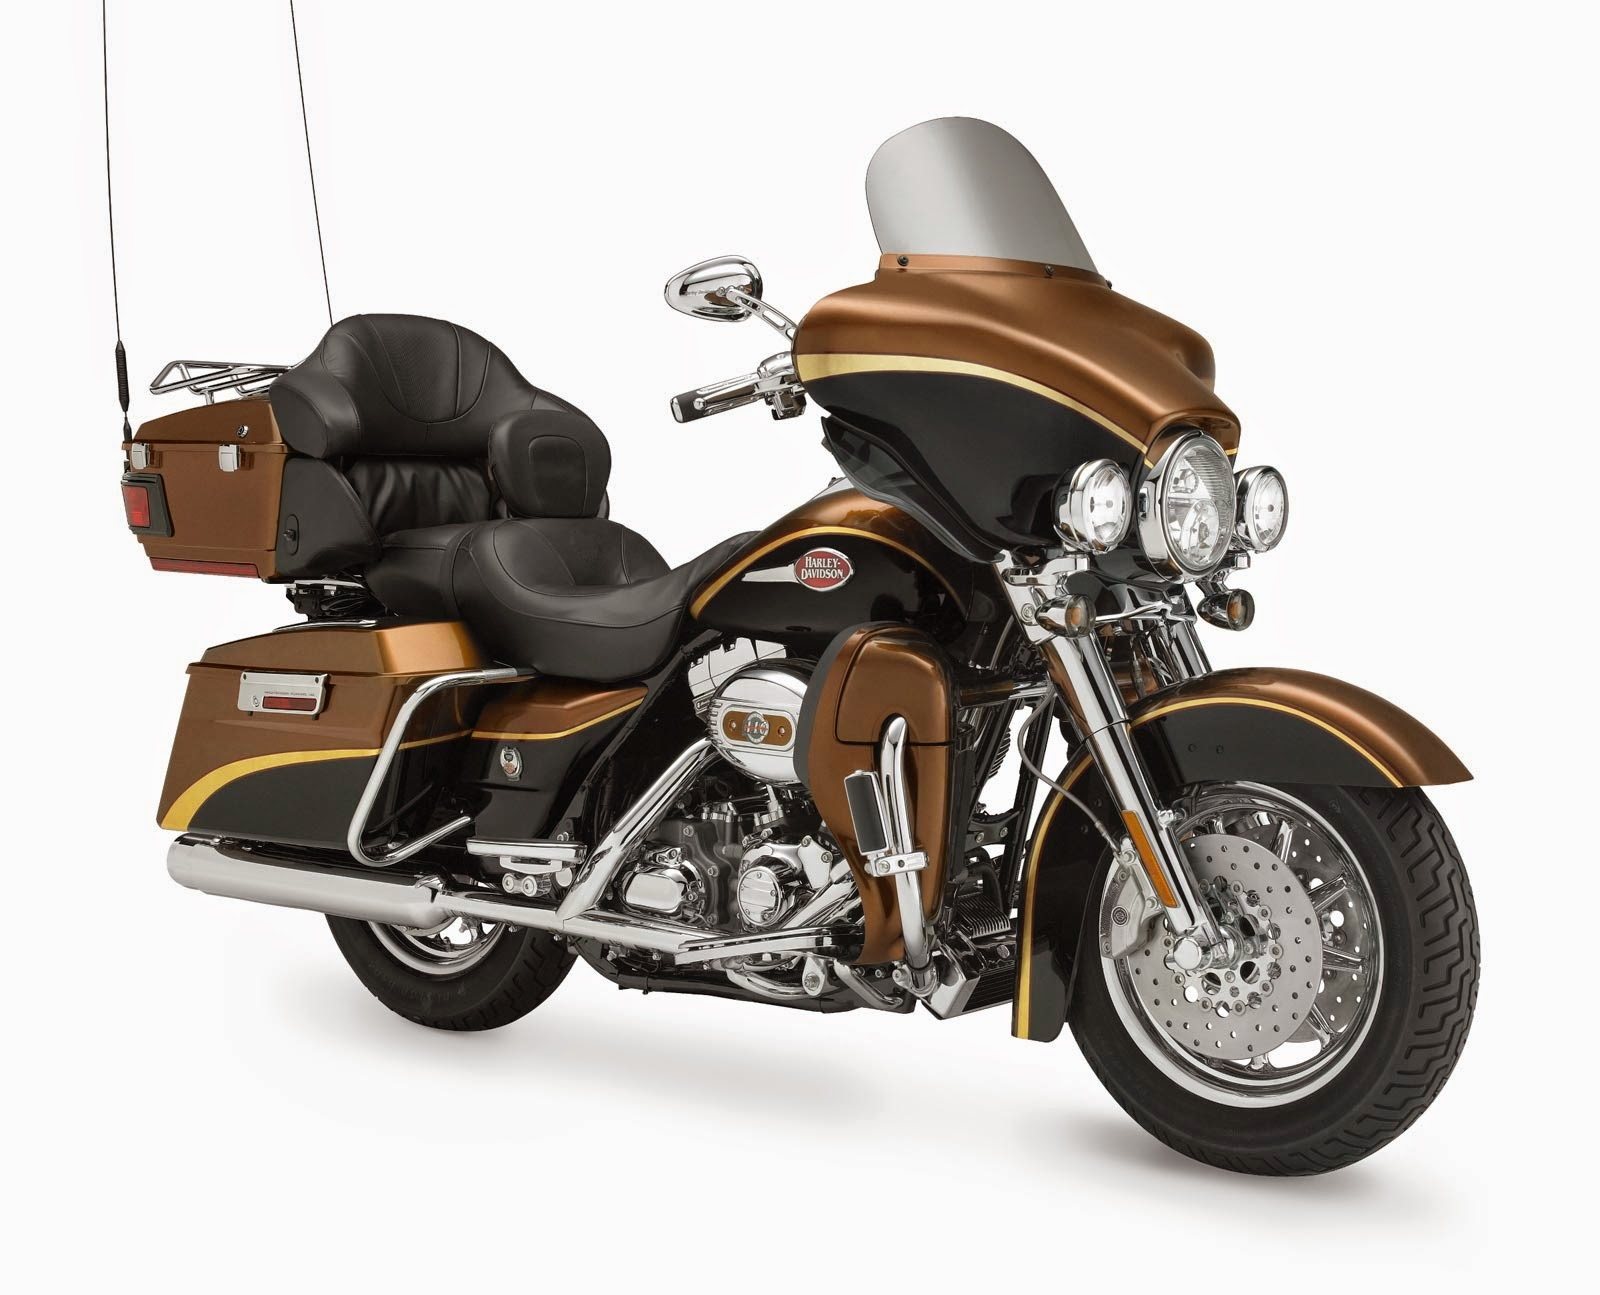 Harley-Davidson CVO Ultra Classic Electra Glide FLHTCUSE3 Owner's Manual  2008 Download Content: Owner's Manual File type: PDF File size: 5,500 KB